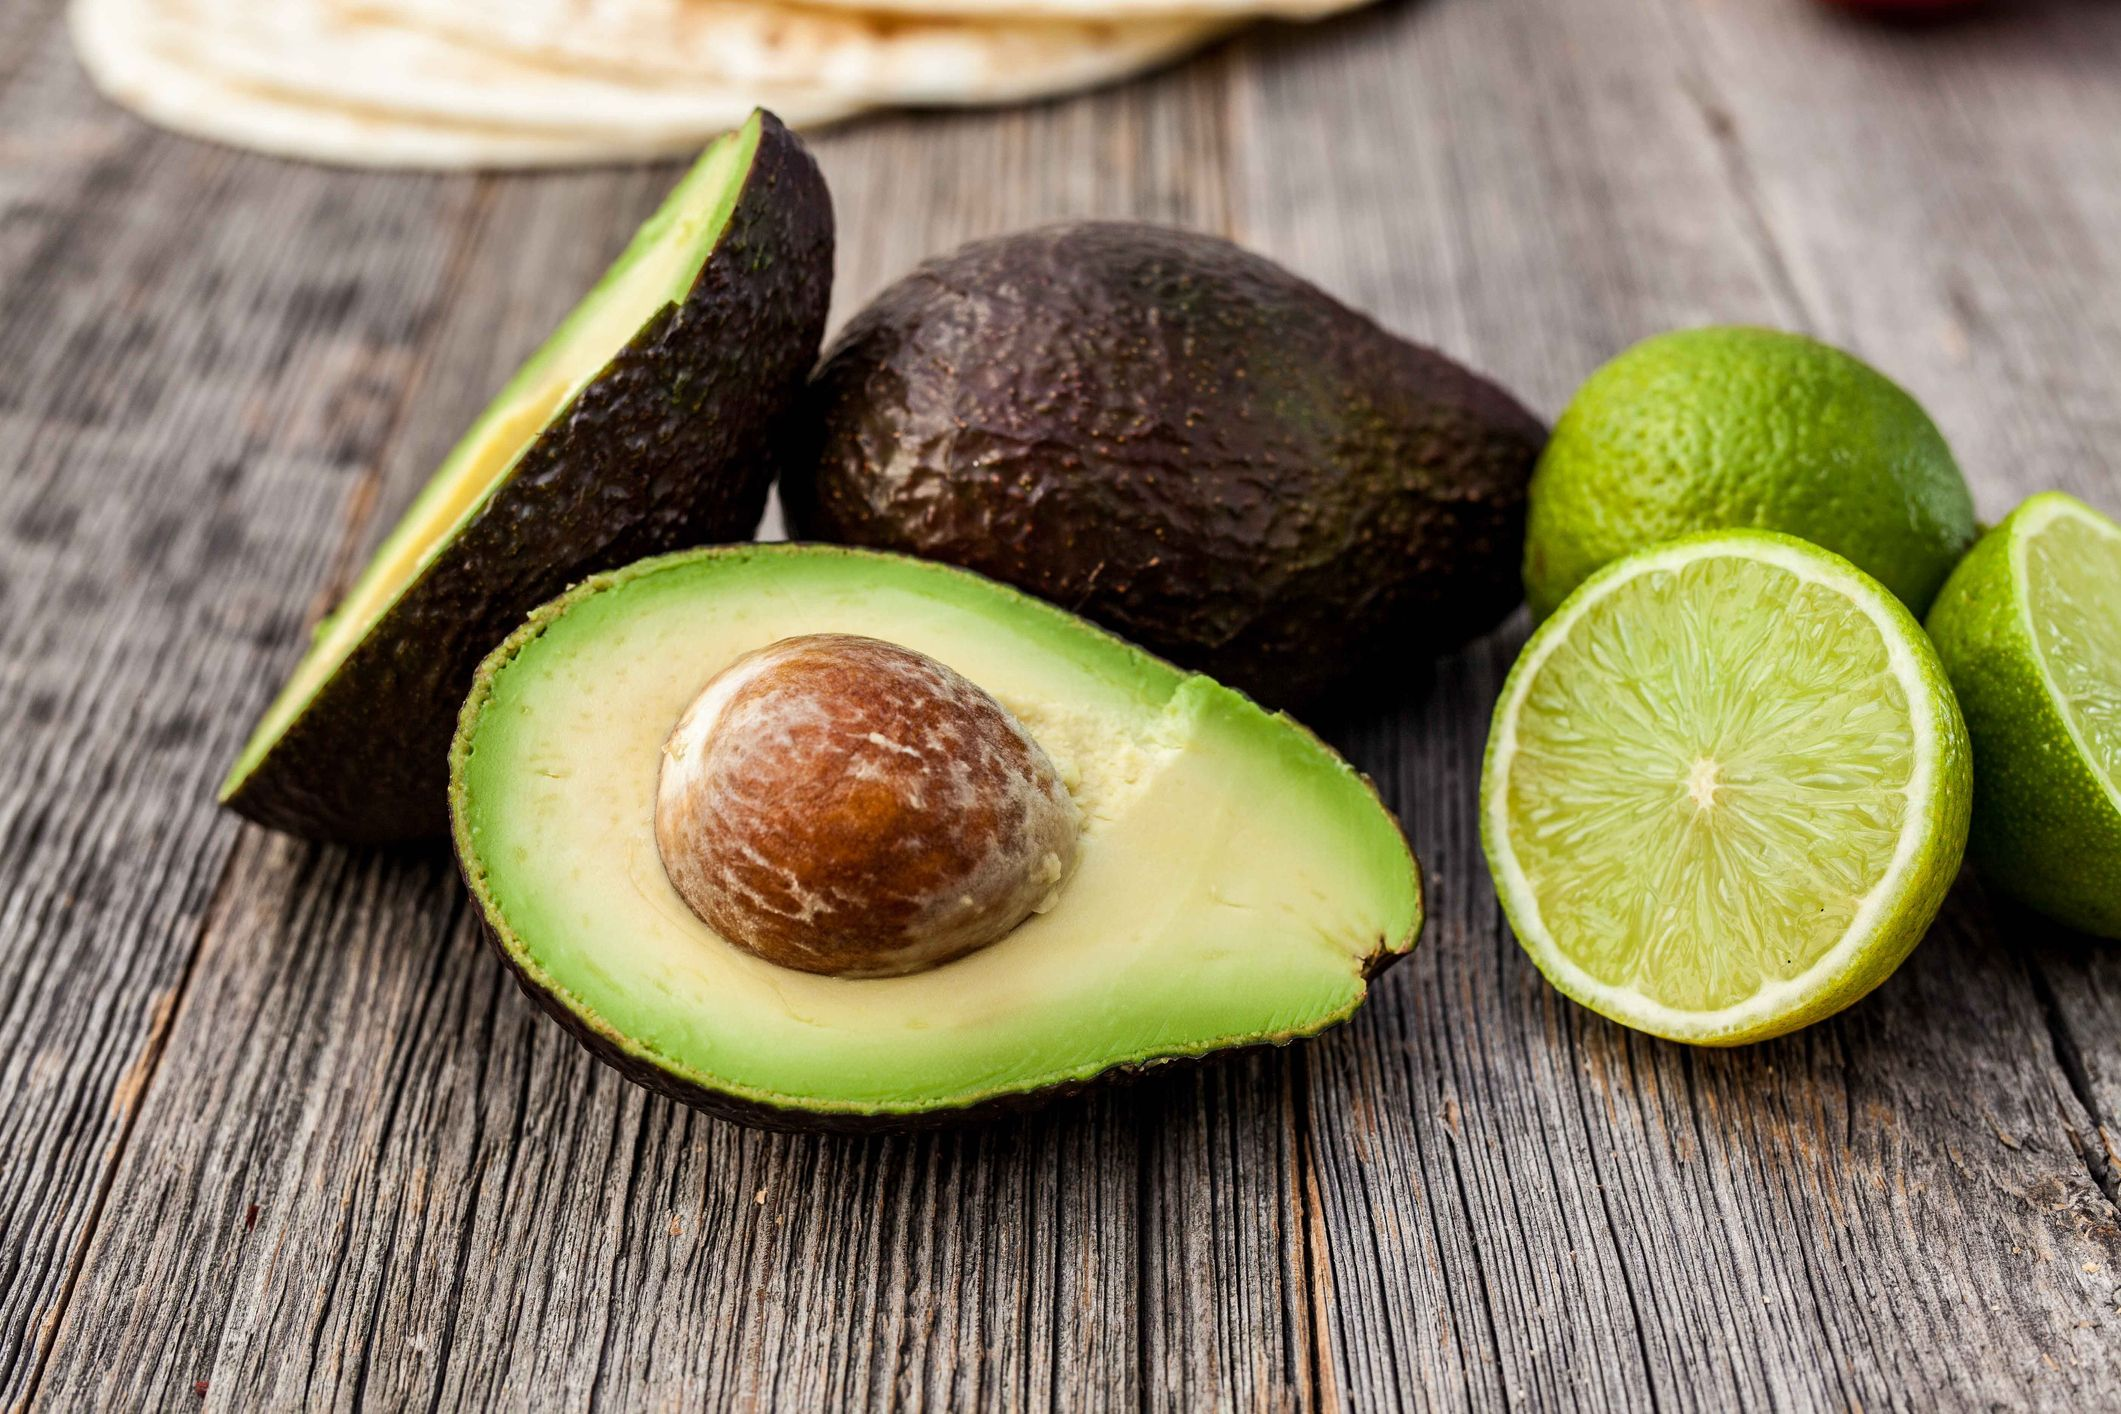 These New Avocados Stay Fresh Twice As Long recommendations